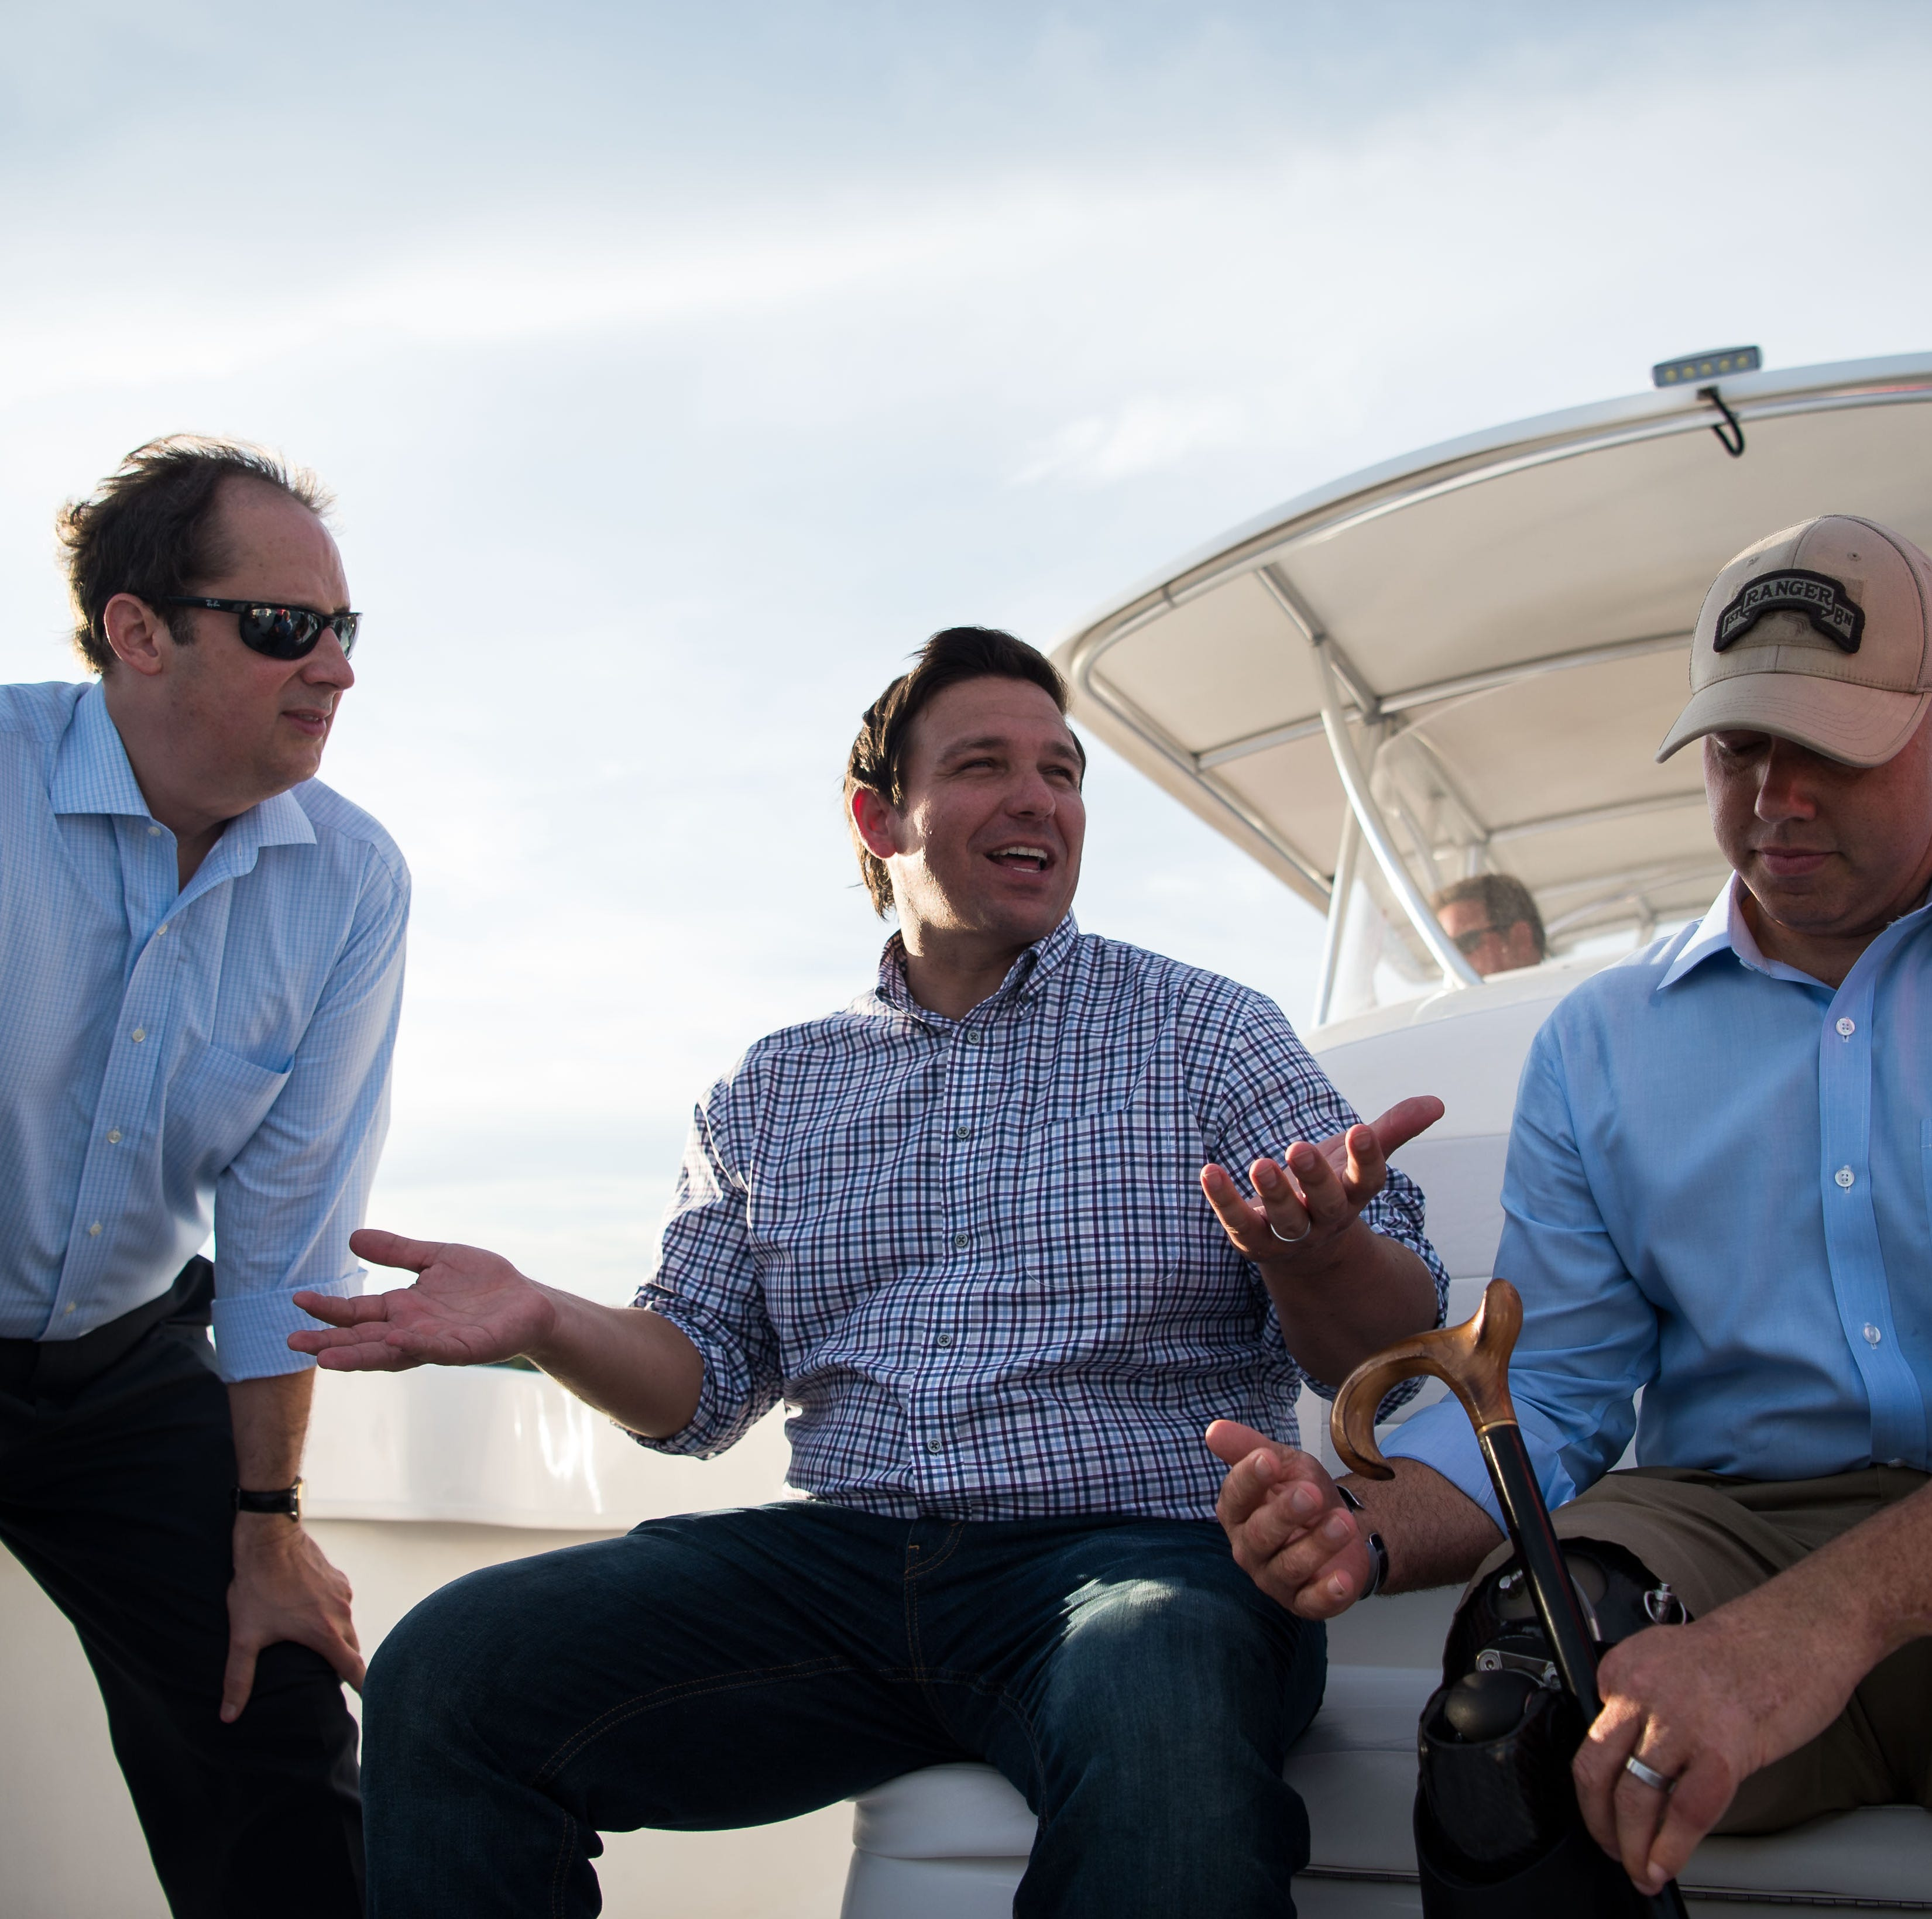 U.S. Reps. Ron DeSantis and Brian Mast take a boat ride out of Stuart, accompanied by Florida Sen. Joe Negron and other stakeholders, on Monday, Aug. 20, 2018, to see and discuss the algae crisis in the St. Lucie River.